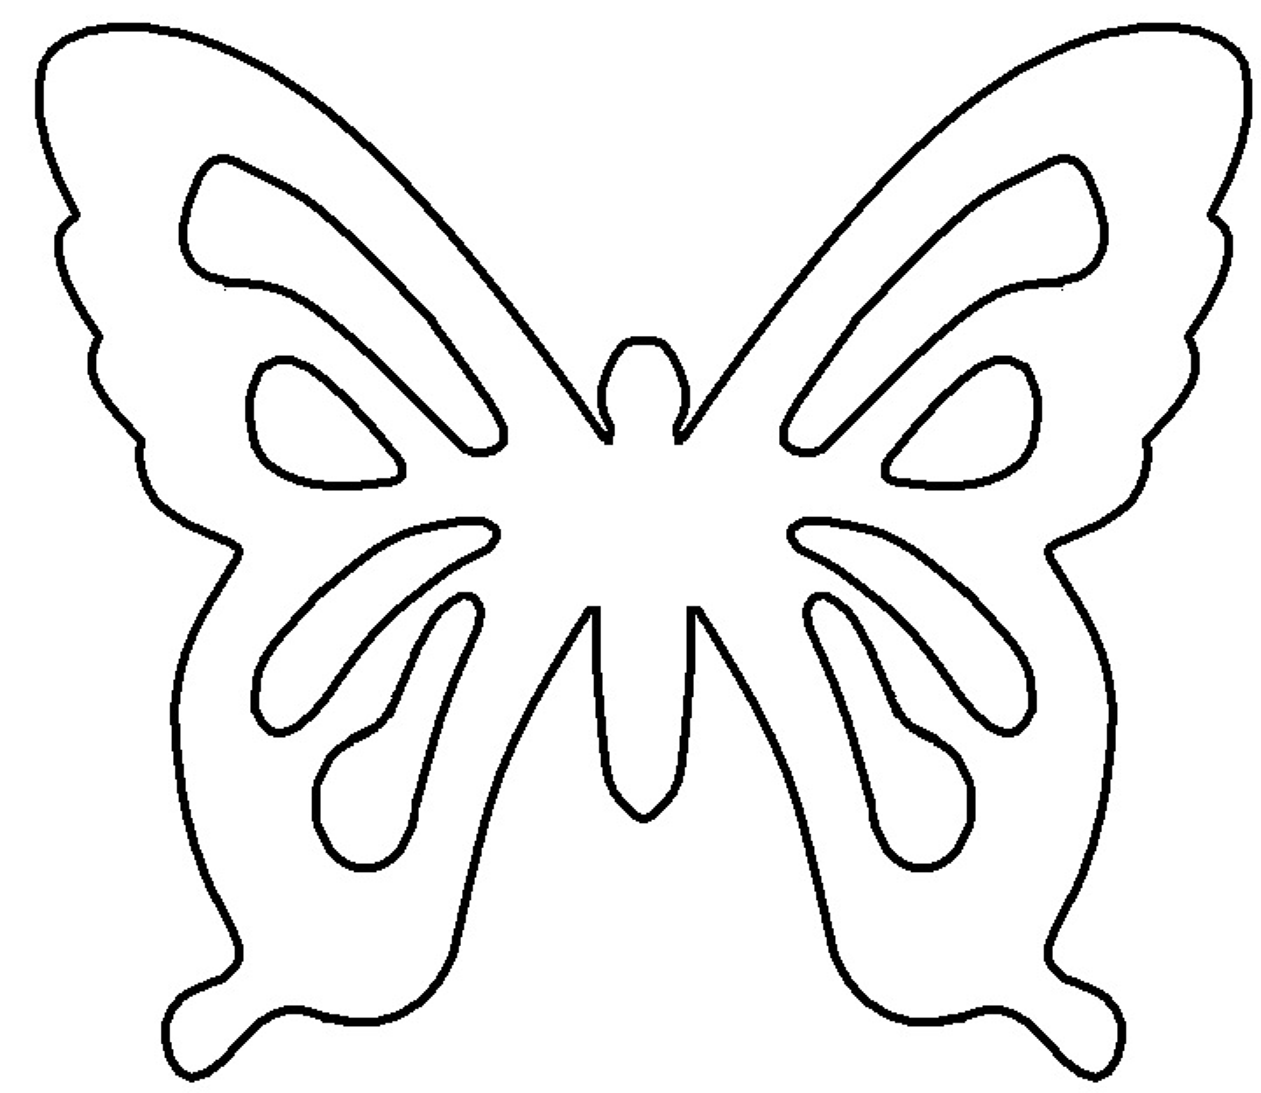 Butterfly wing outline clipartsco for Butterfly templates to print